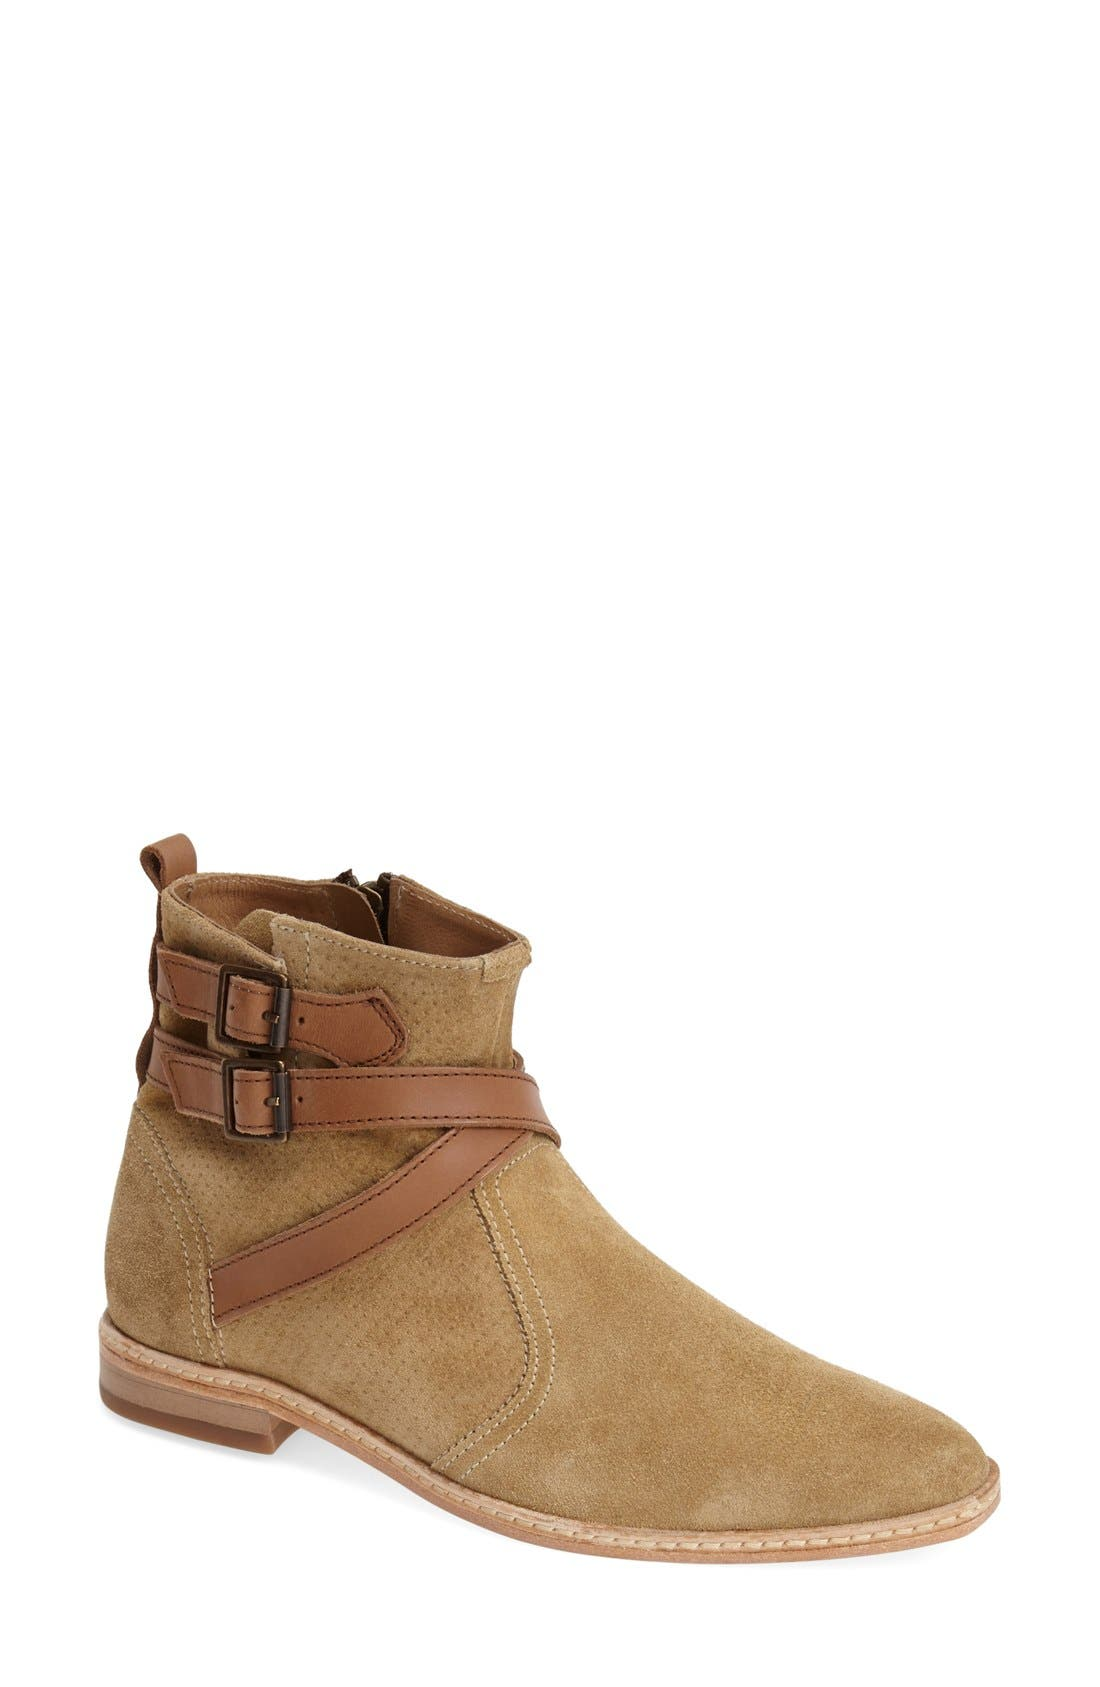 Alternate Image 1 Selected - H by Hudson 'Tab' Suede Chelsea Bootie (Women)